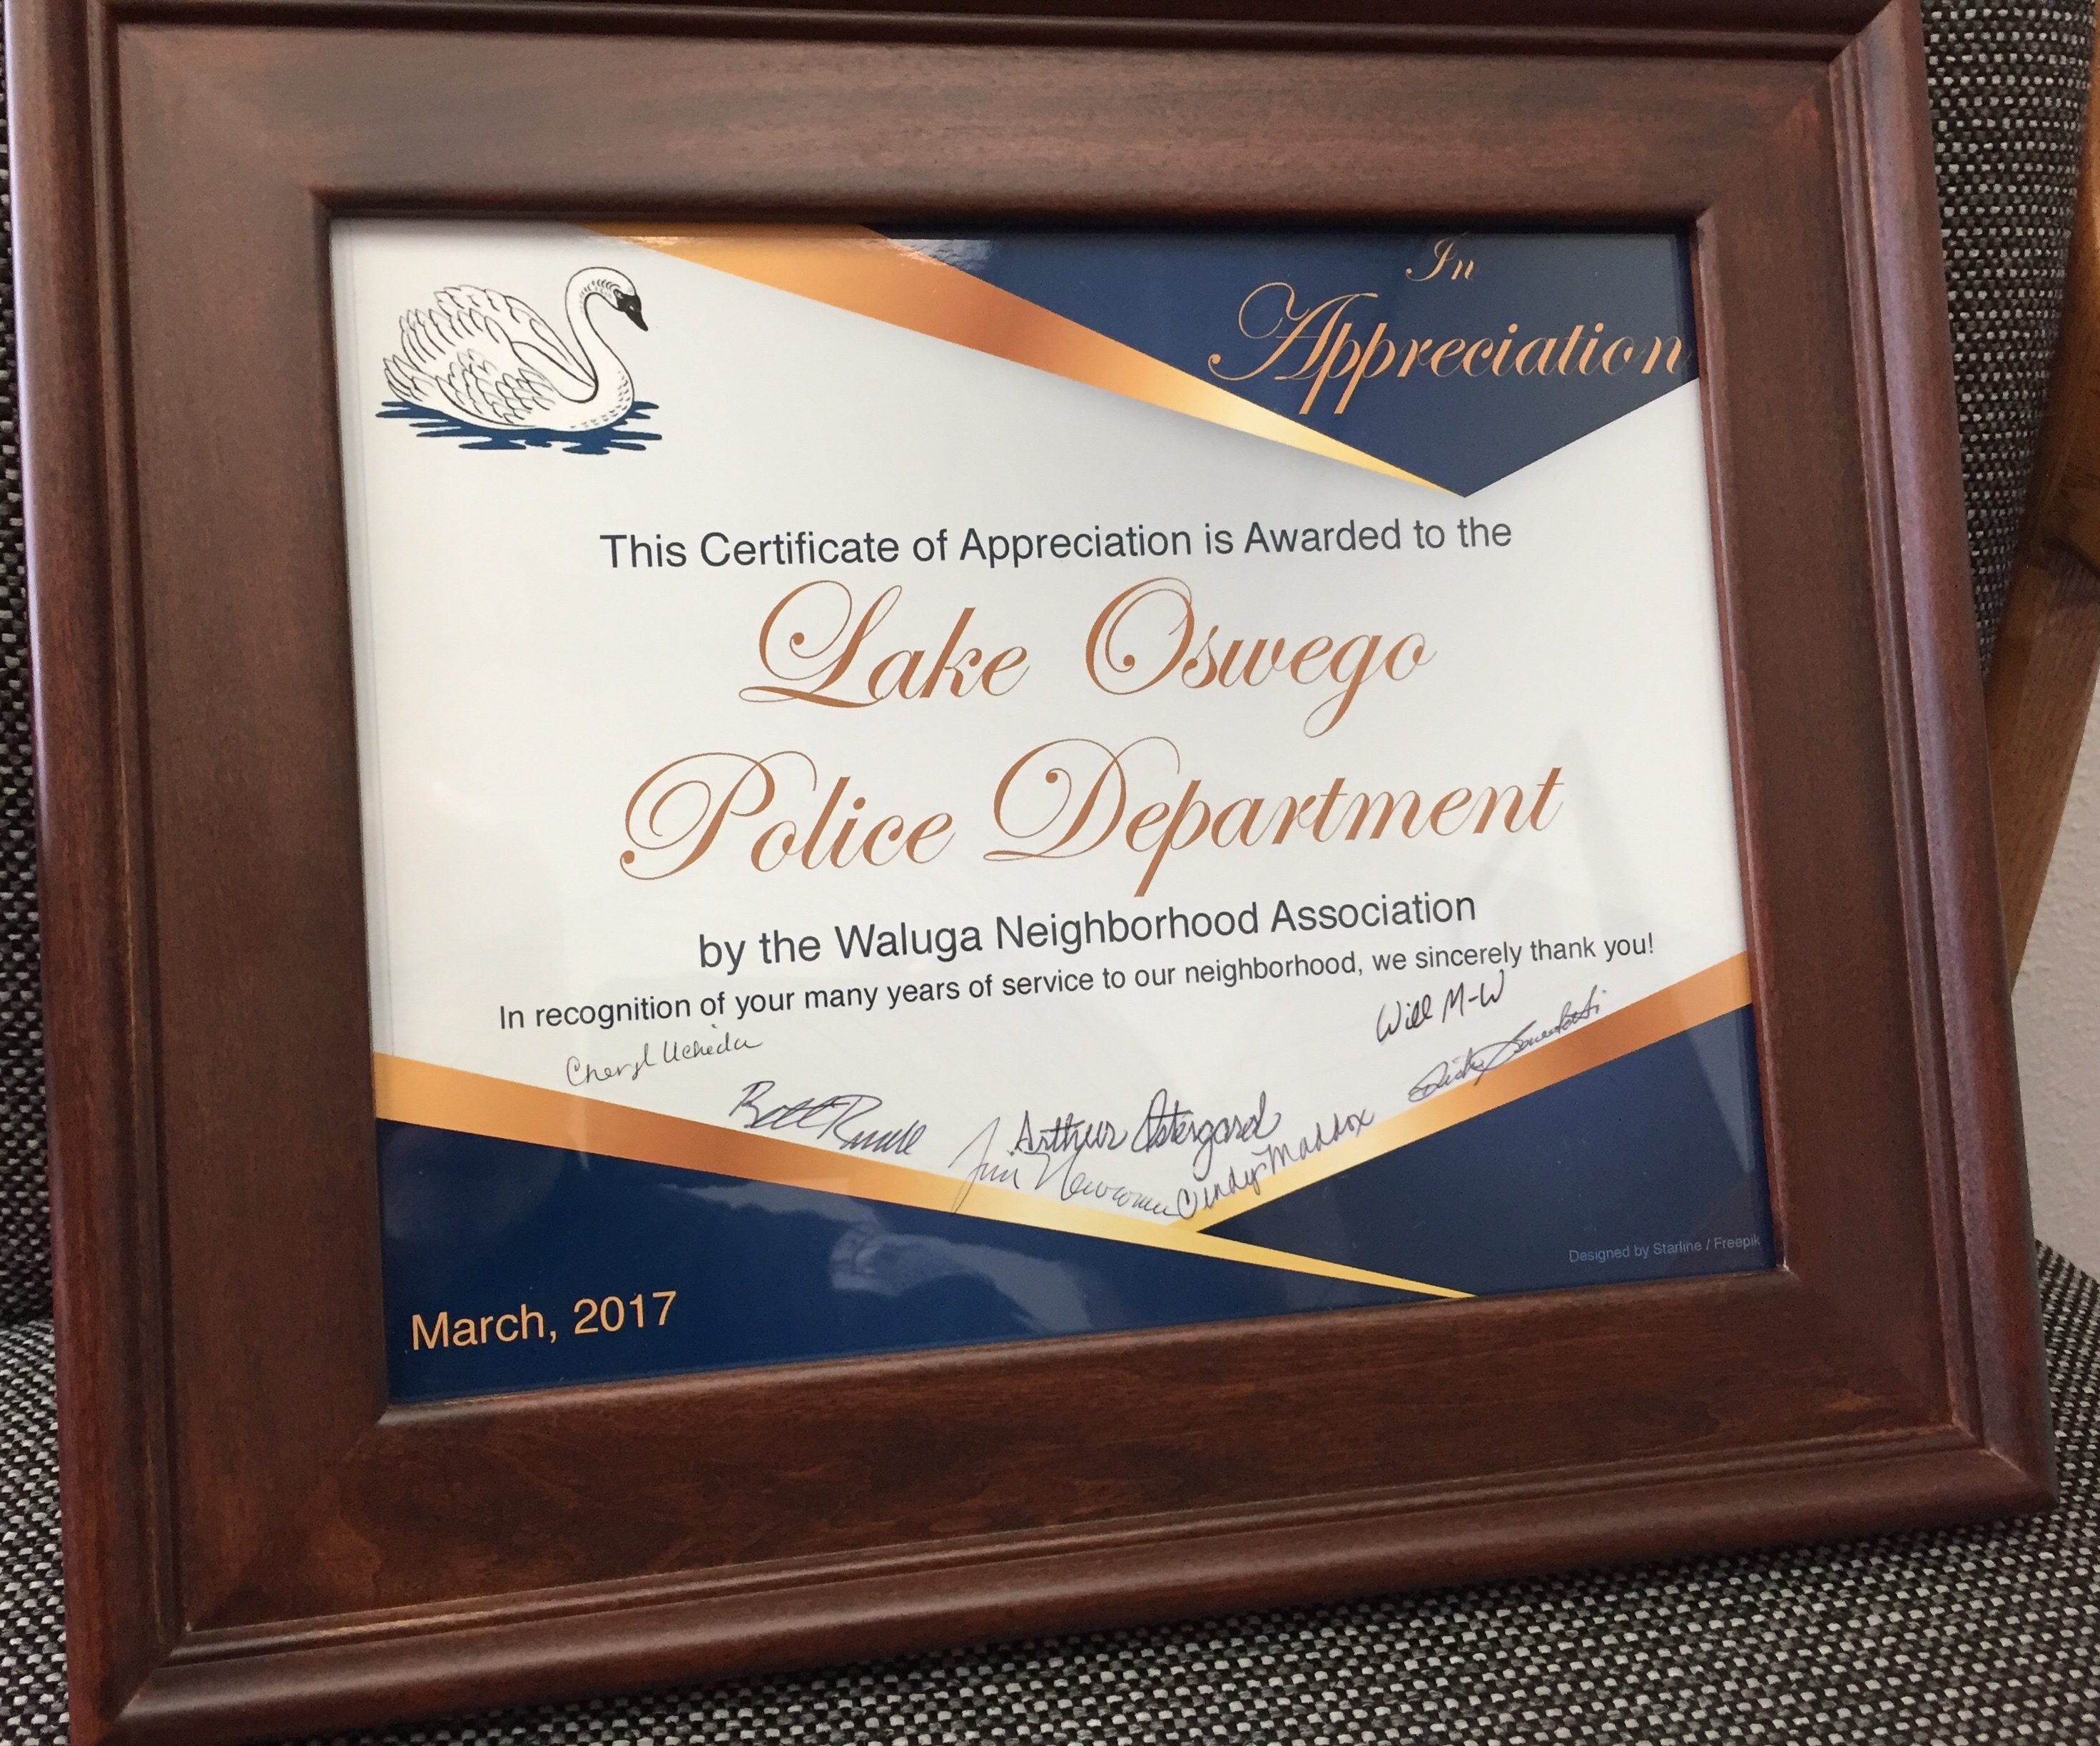 Julia warren council digest page 2 borhood association presented a framed certificate to the lake oswego police department xflitez Gallery